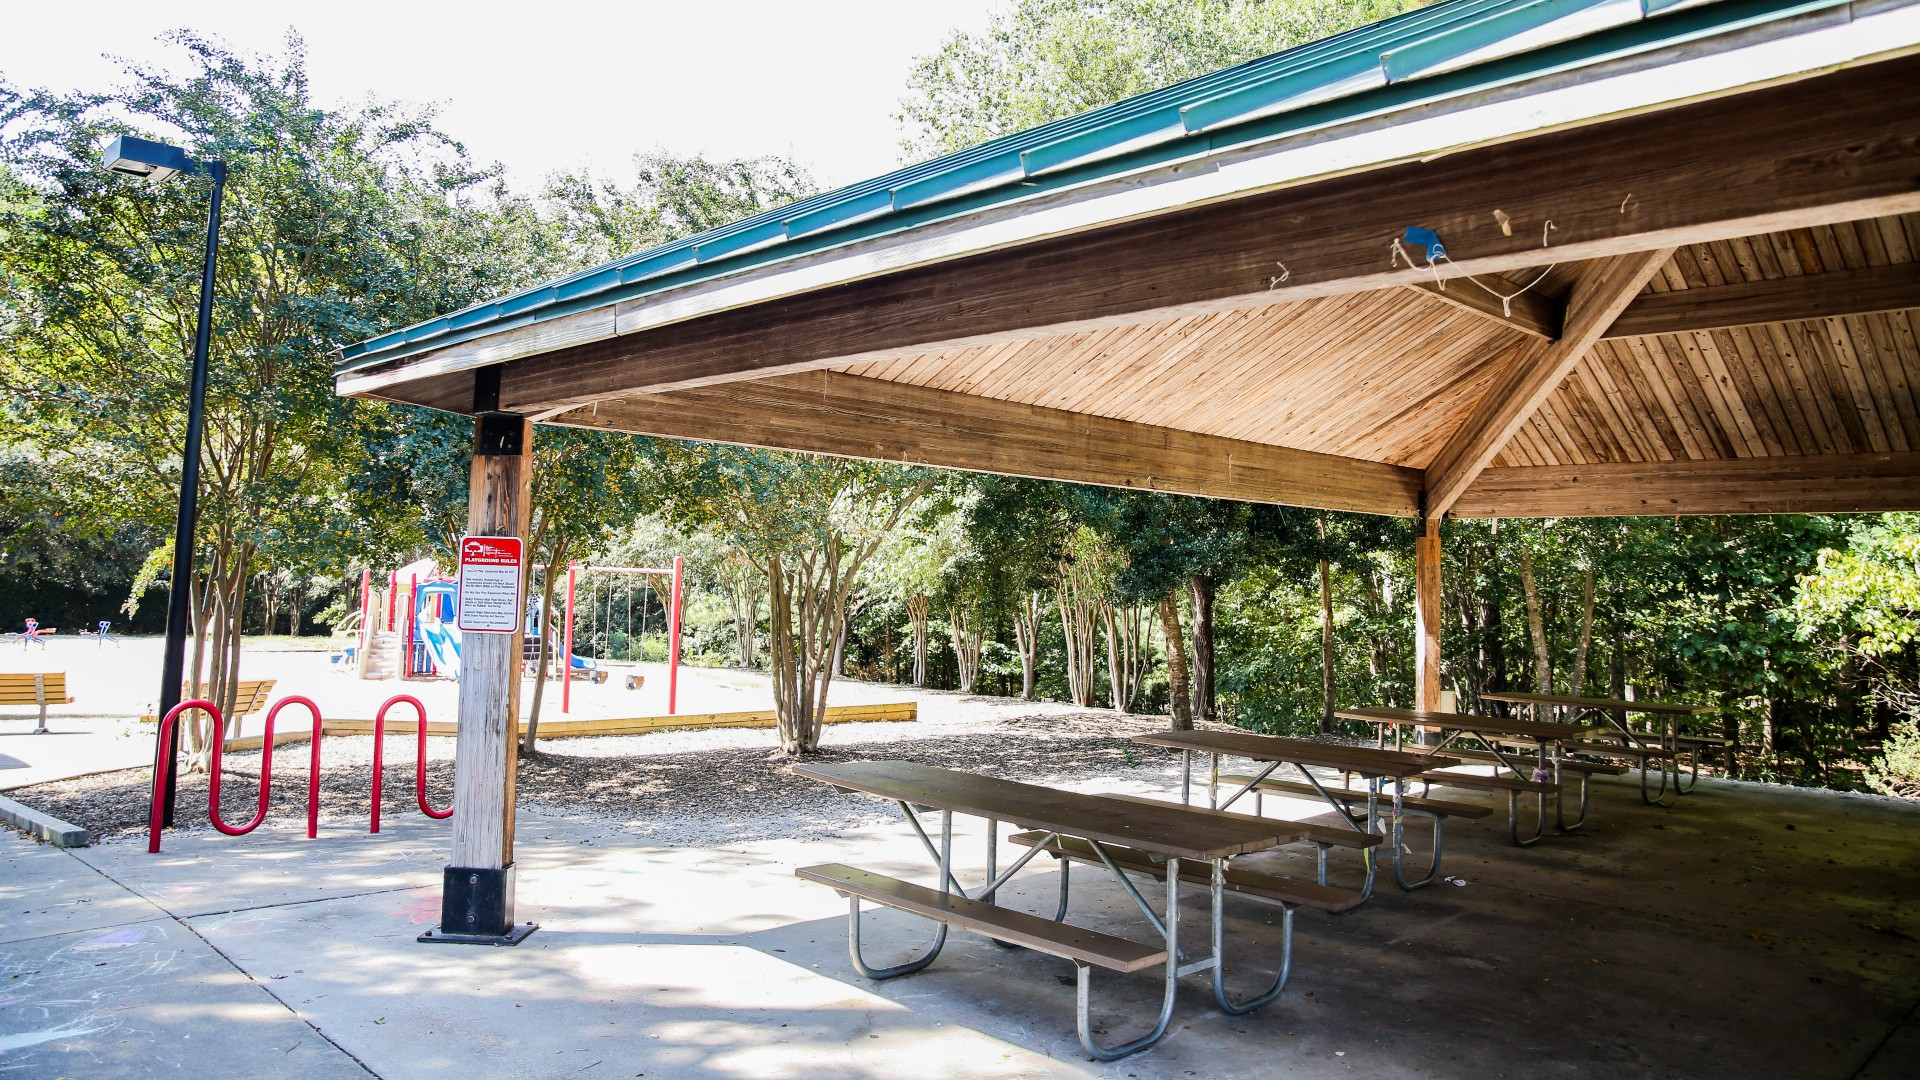 A large outdoor picnic shelter at Baileywick Park next to the playground